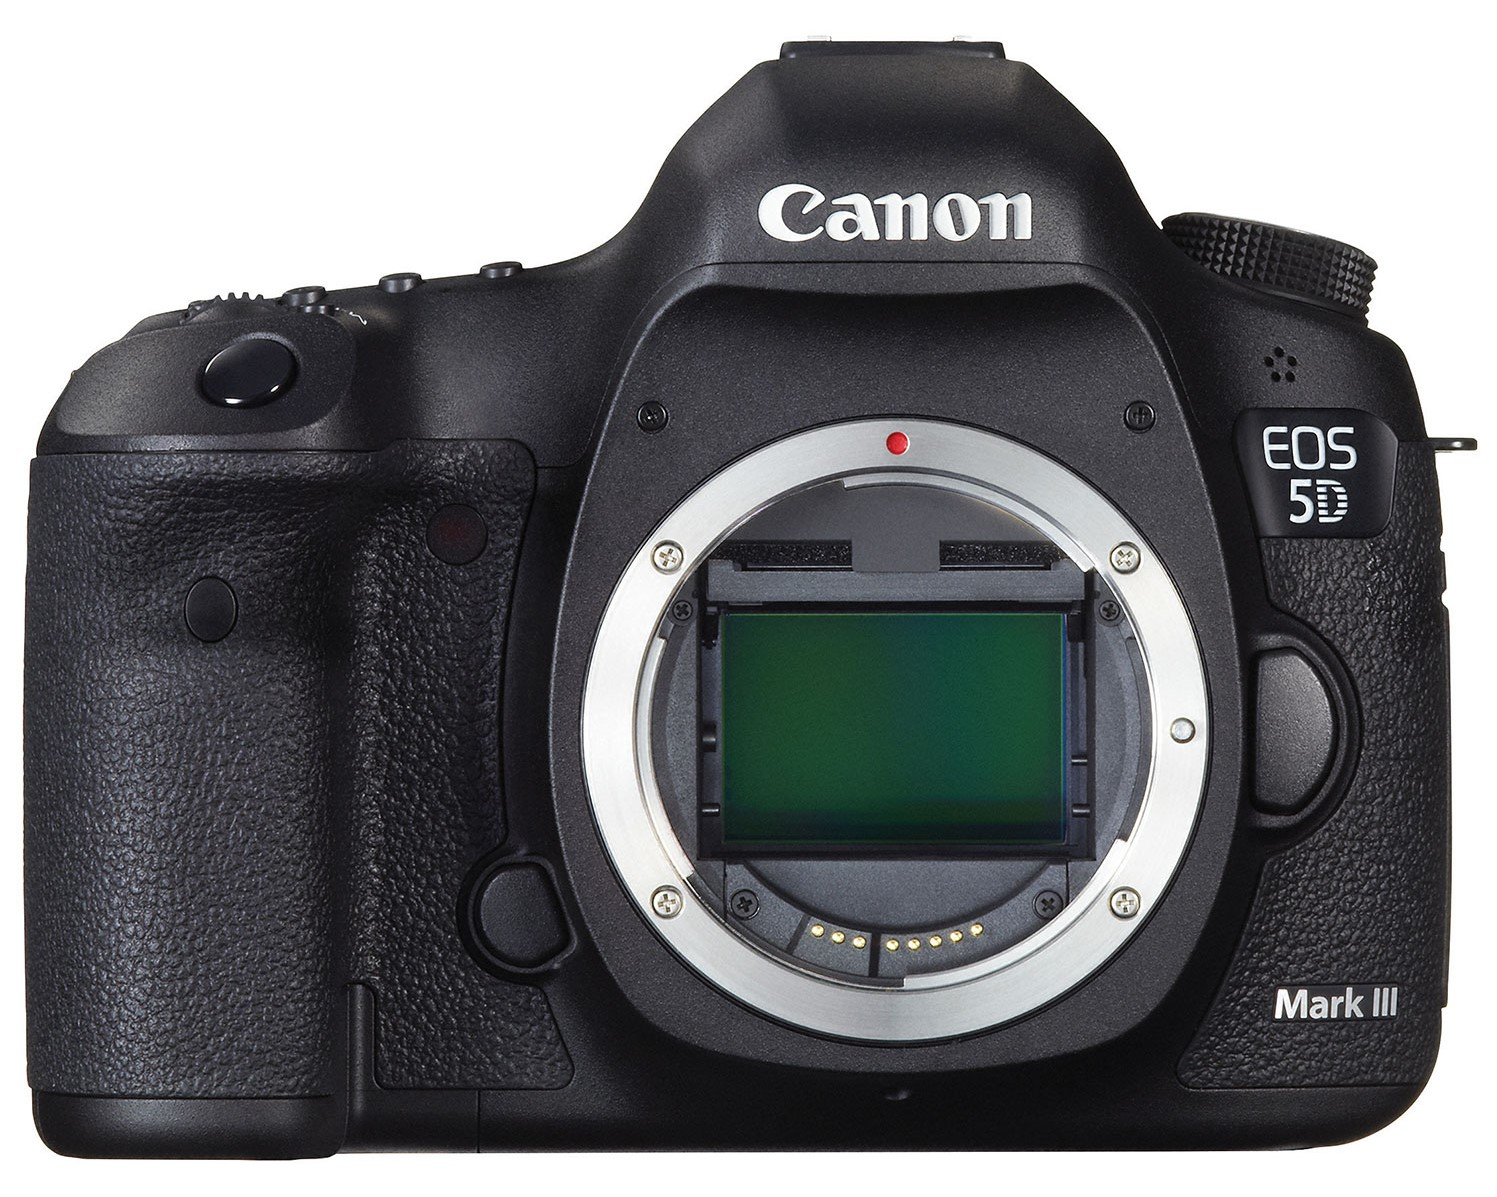 Best Camera for Portrait Photography: Canon EOS 5D Mark III